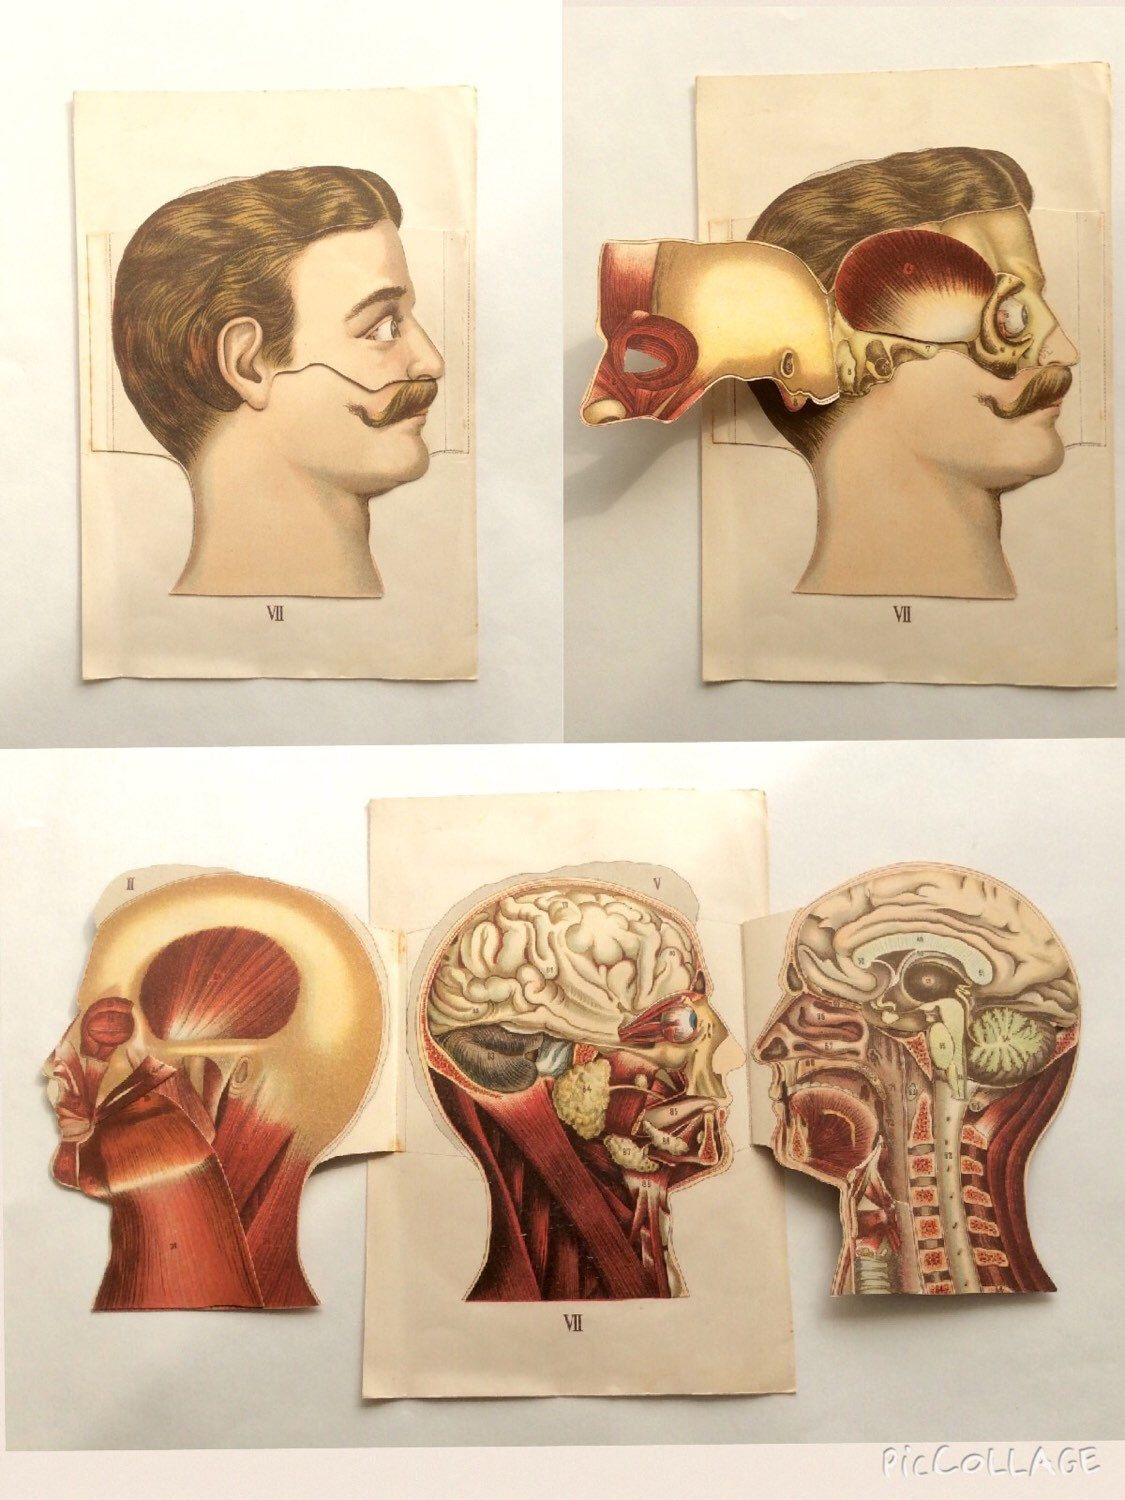 Vintage 1890s german medical anatomy diagram fold out vintage 1890s german medical anatomy diagram fold out chromolithograph bookplate head brain skull muscles svankmajer collage ccuart Image collections